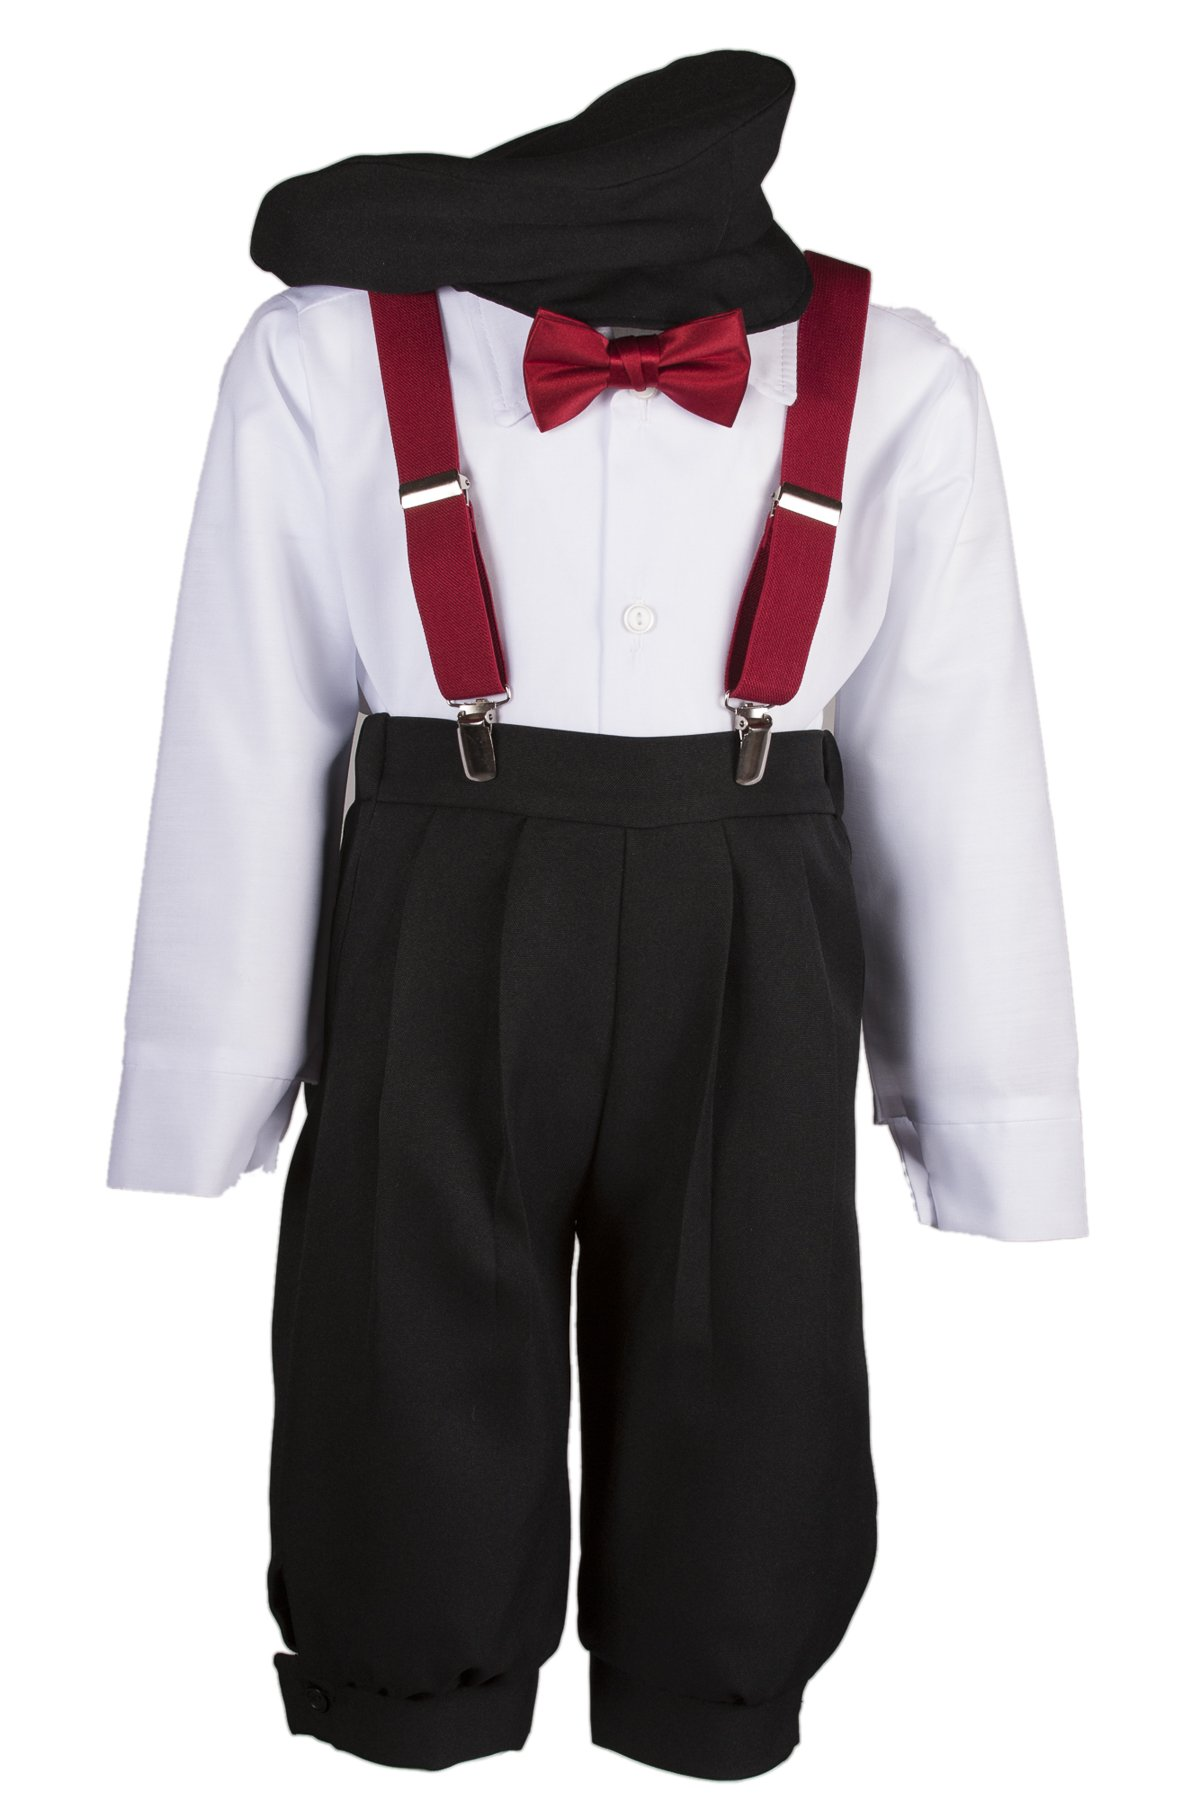 Boys Black Knicker Set with Apple Red Suspenders & Bow Tie 8